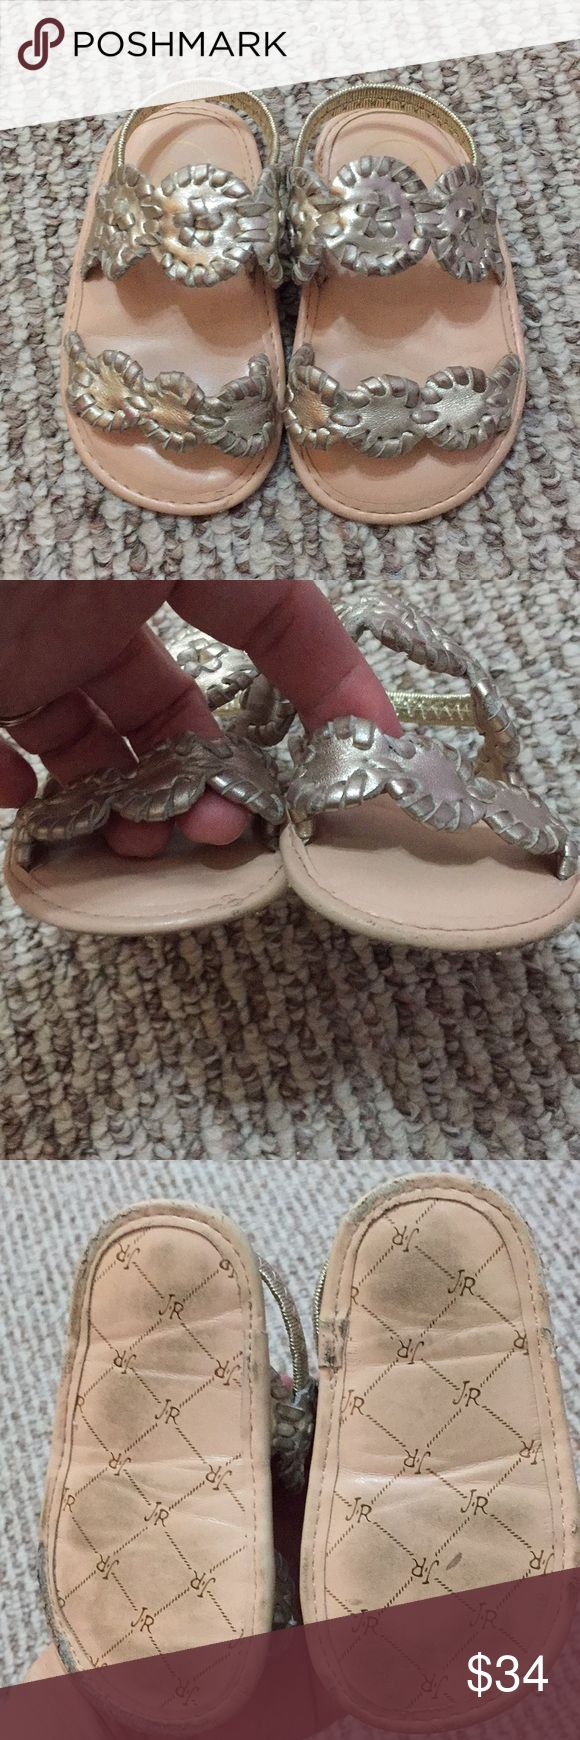 Jack Rogers Lauren Platinum Toddler Sandals Size 4 Jack Rogers Lauren Platinum Toddler Sandals Size 4. Sandals are in good condition but show signs of wear. Priced accordingly. No trades. No dealing outside of Poshmark. Thanks for shopping with us! Jack Rogers Shoes Baby & Walker